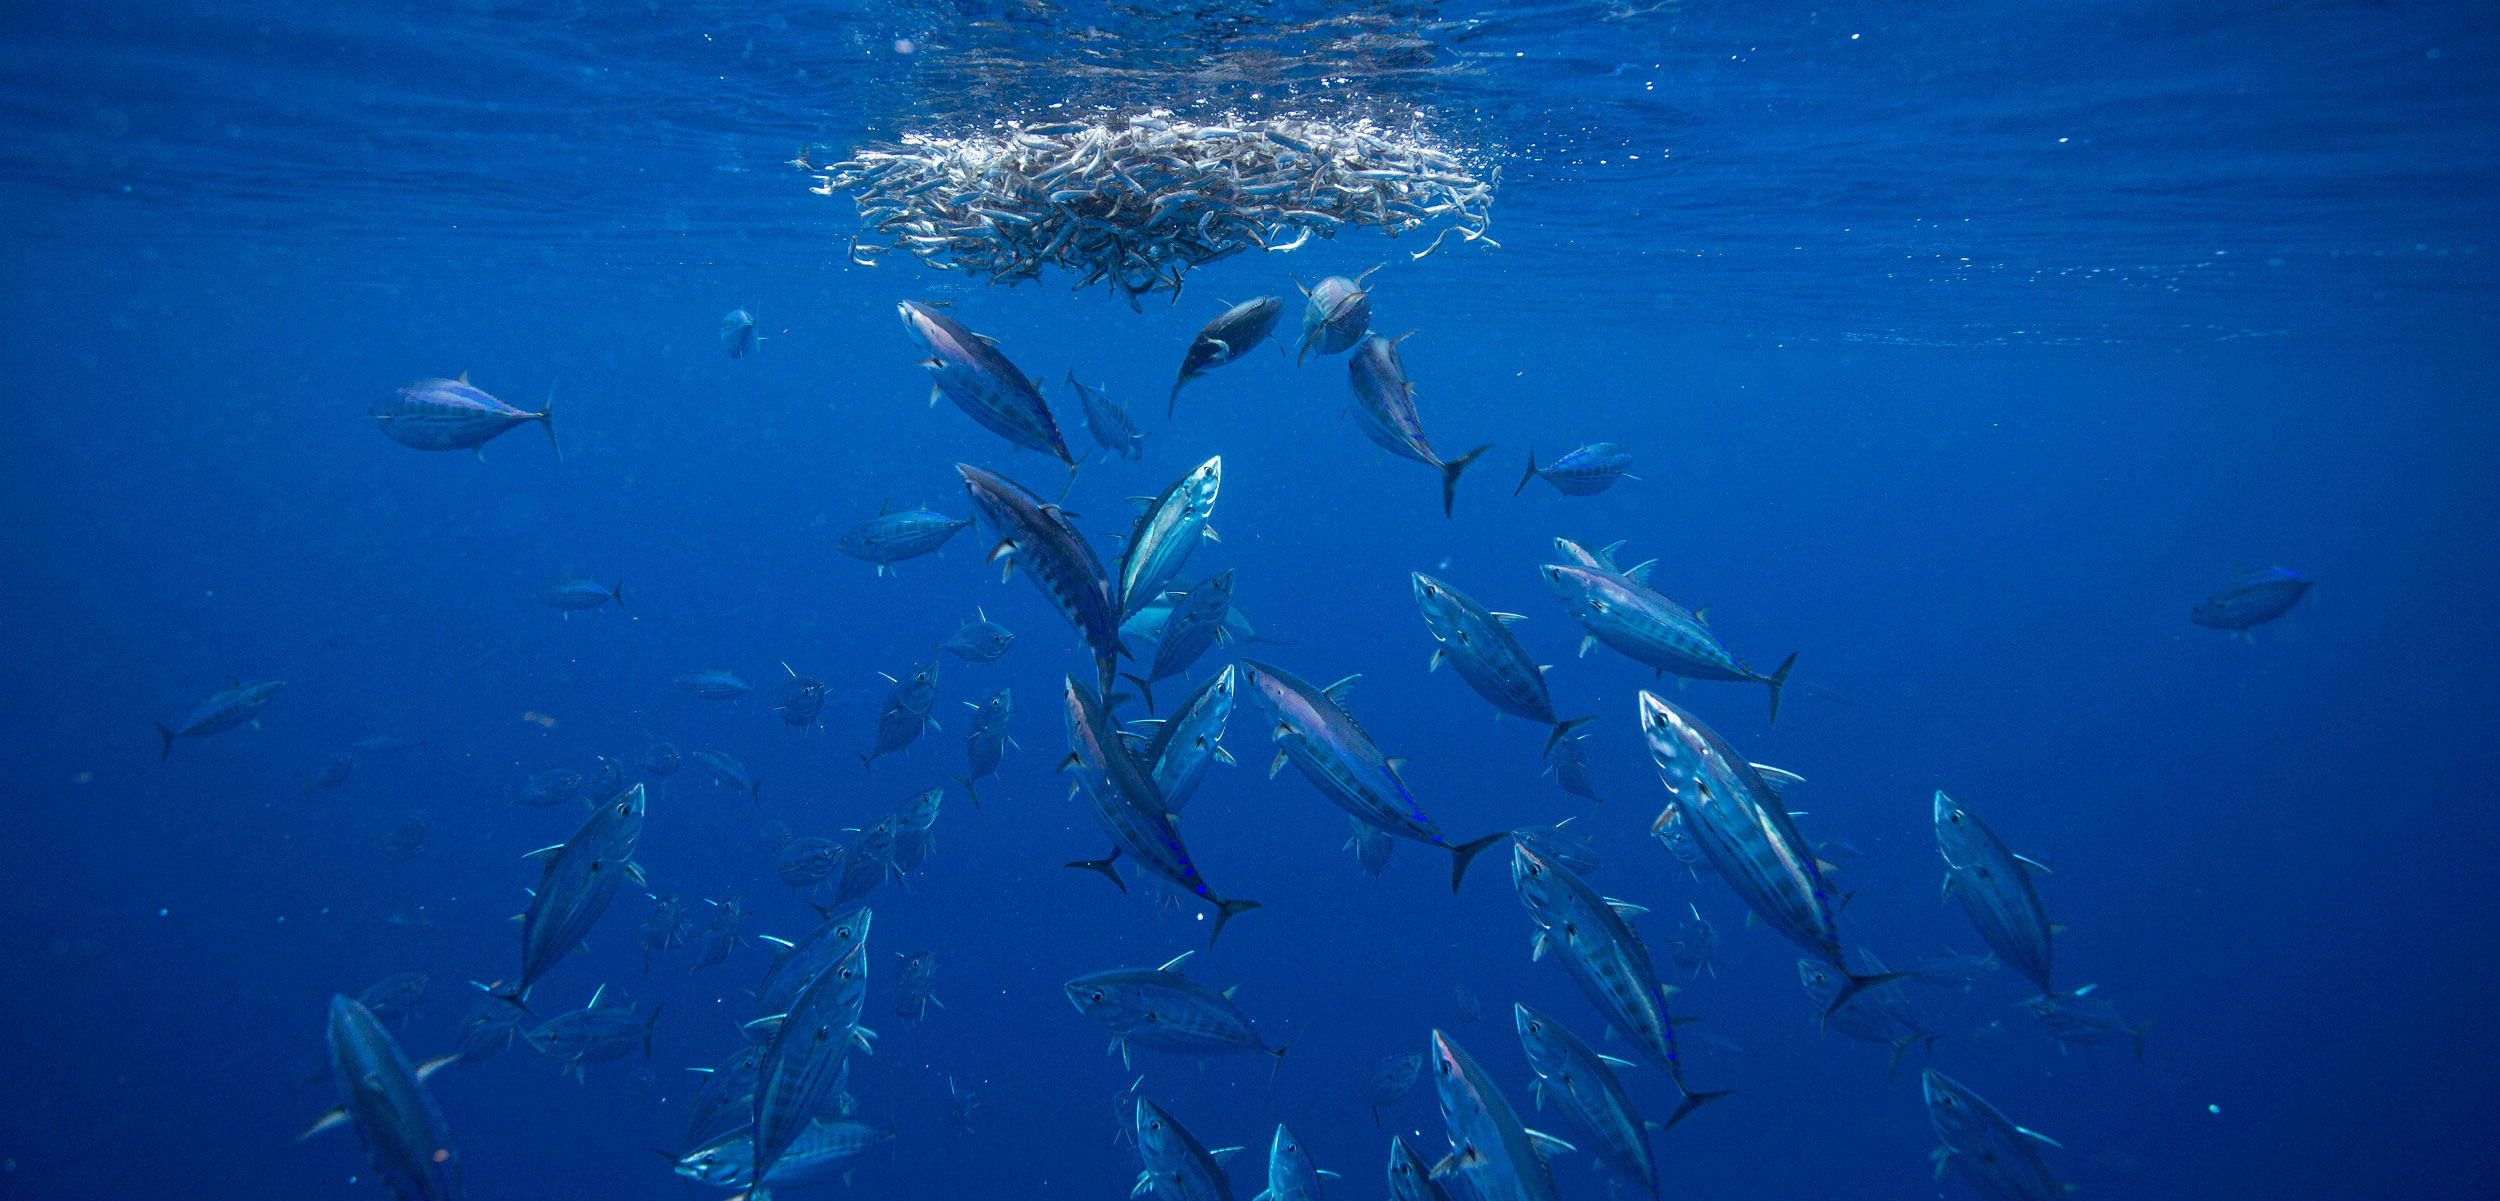 A school of skipjack tuna feed on northern anchovy